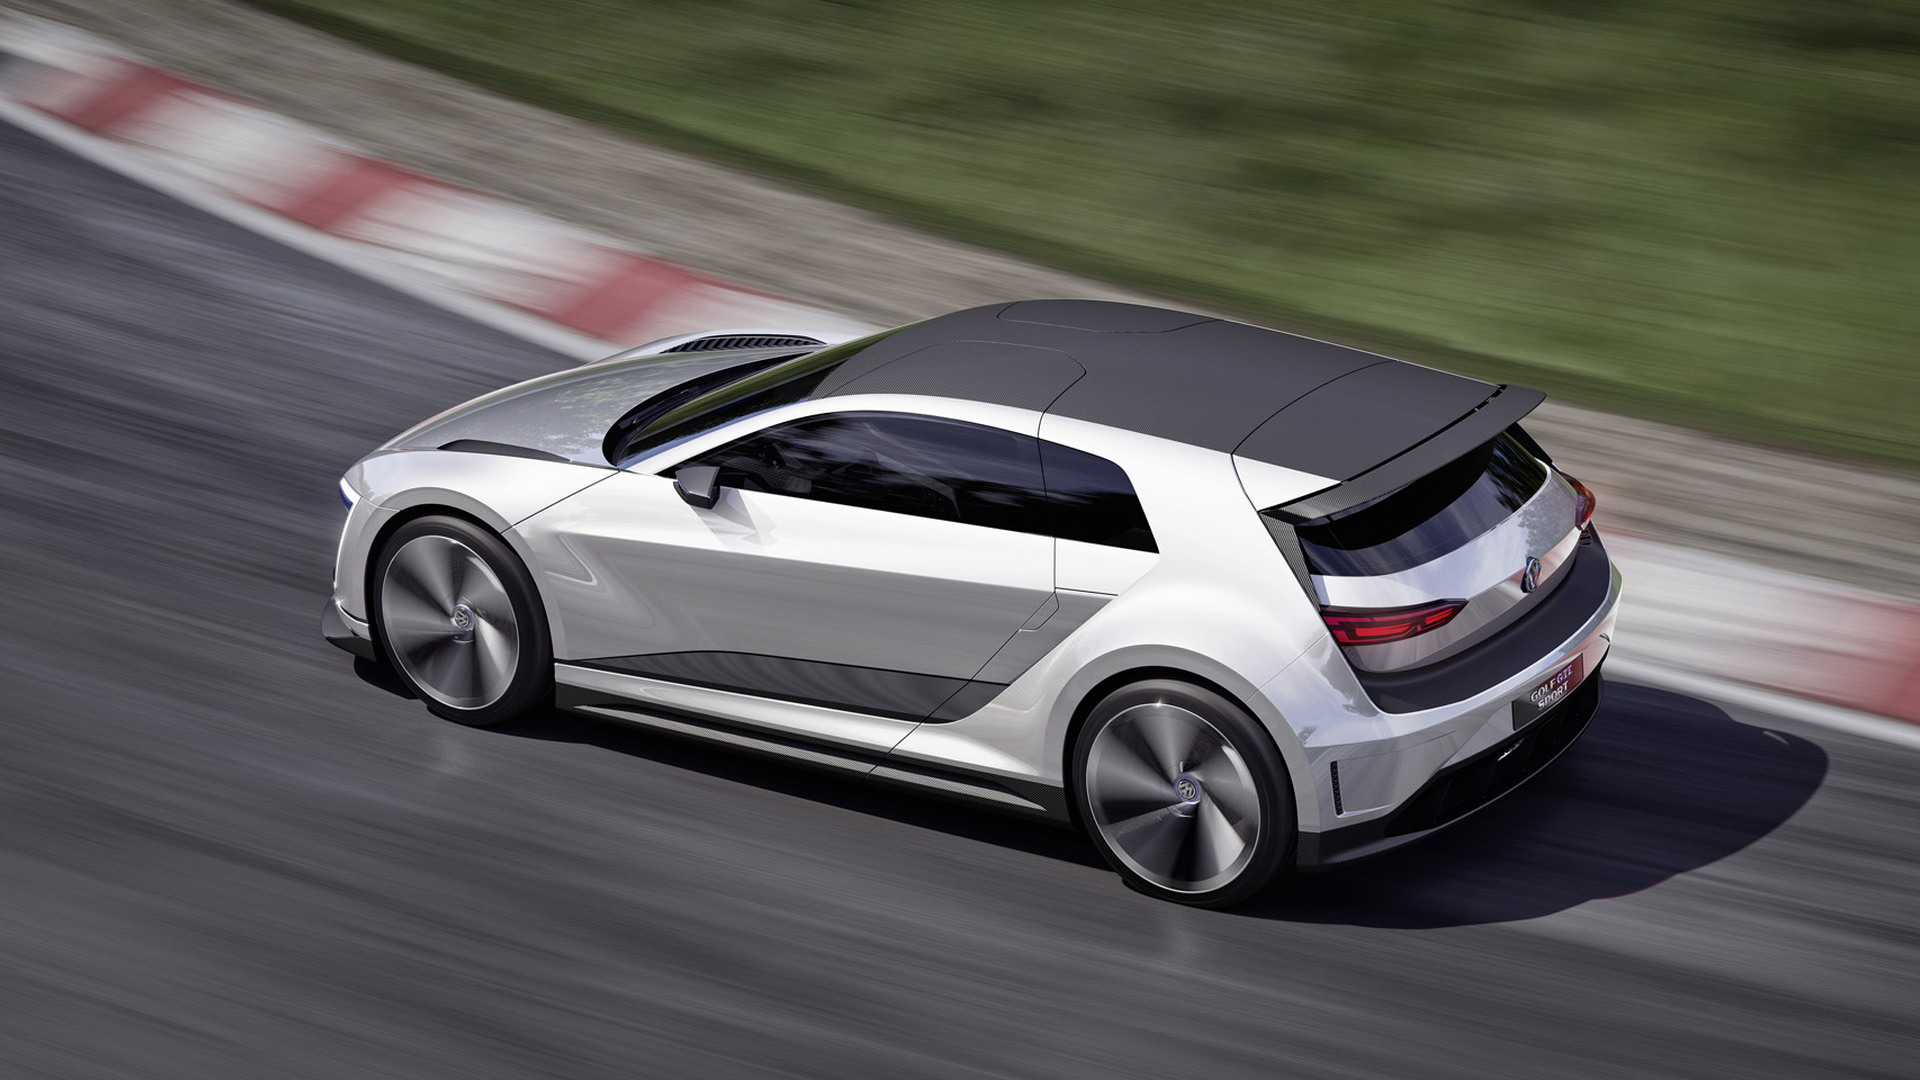 Vw Golf Gte Sport Concept 174 Mph Plug In Hybrid Carbon Bodied Golf